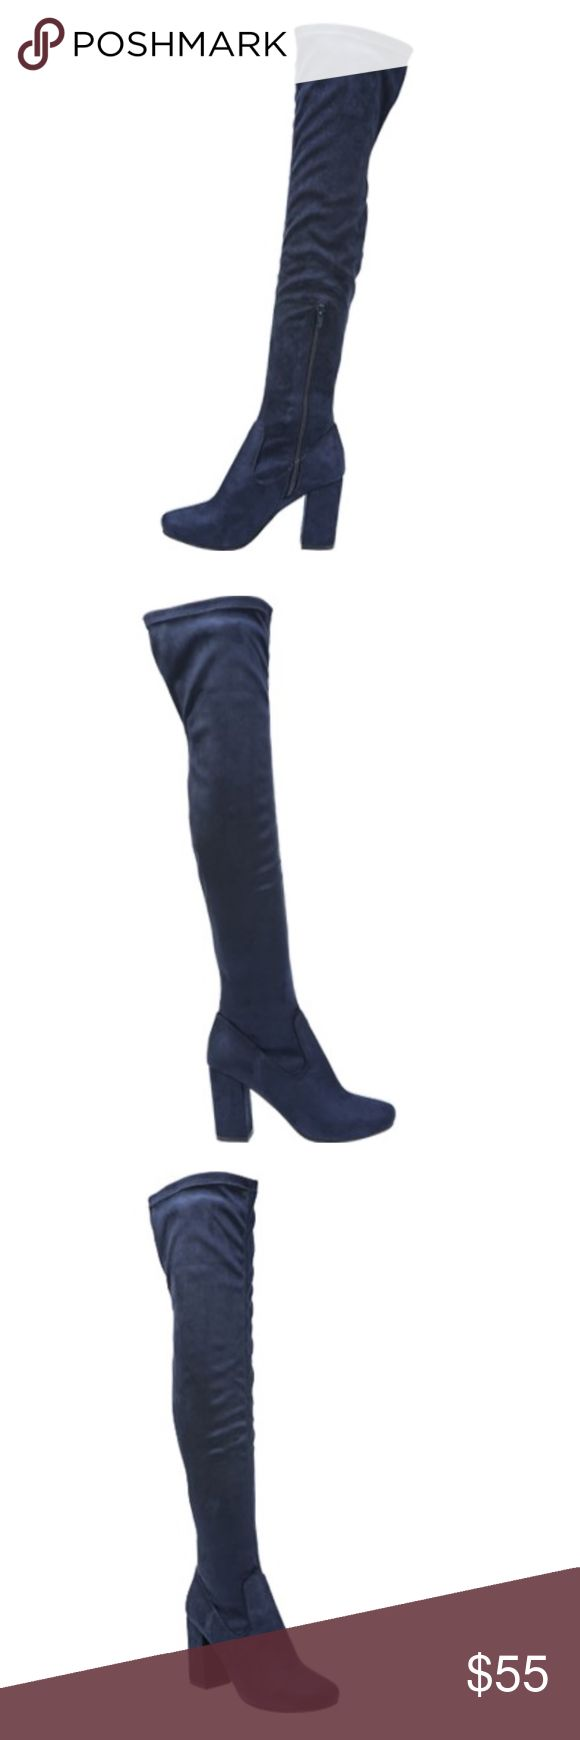 """Carlos Santana Rumer Hawa Over the Knee Boot Navy NEW IN BOX!     Size 7.5 Color: Navy  Soft faux suede creates comfortable wear on a striking over-the-knee boot.    DETAILS:  - Round toe   - Solid vamp  - Side zipper closure  - Wrapped block heel  - Approx. 17.5"""" shaft height, 14"""" opening circumference  - Approx. 3.25"""" heel - Imported Carlos Santana Shoes Ankle Boots & Booties"""